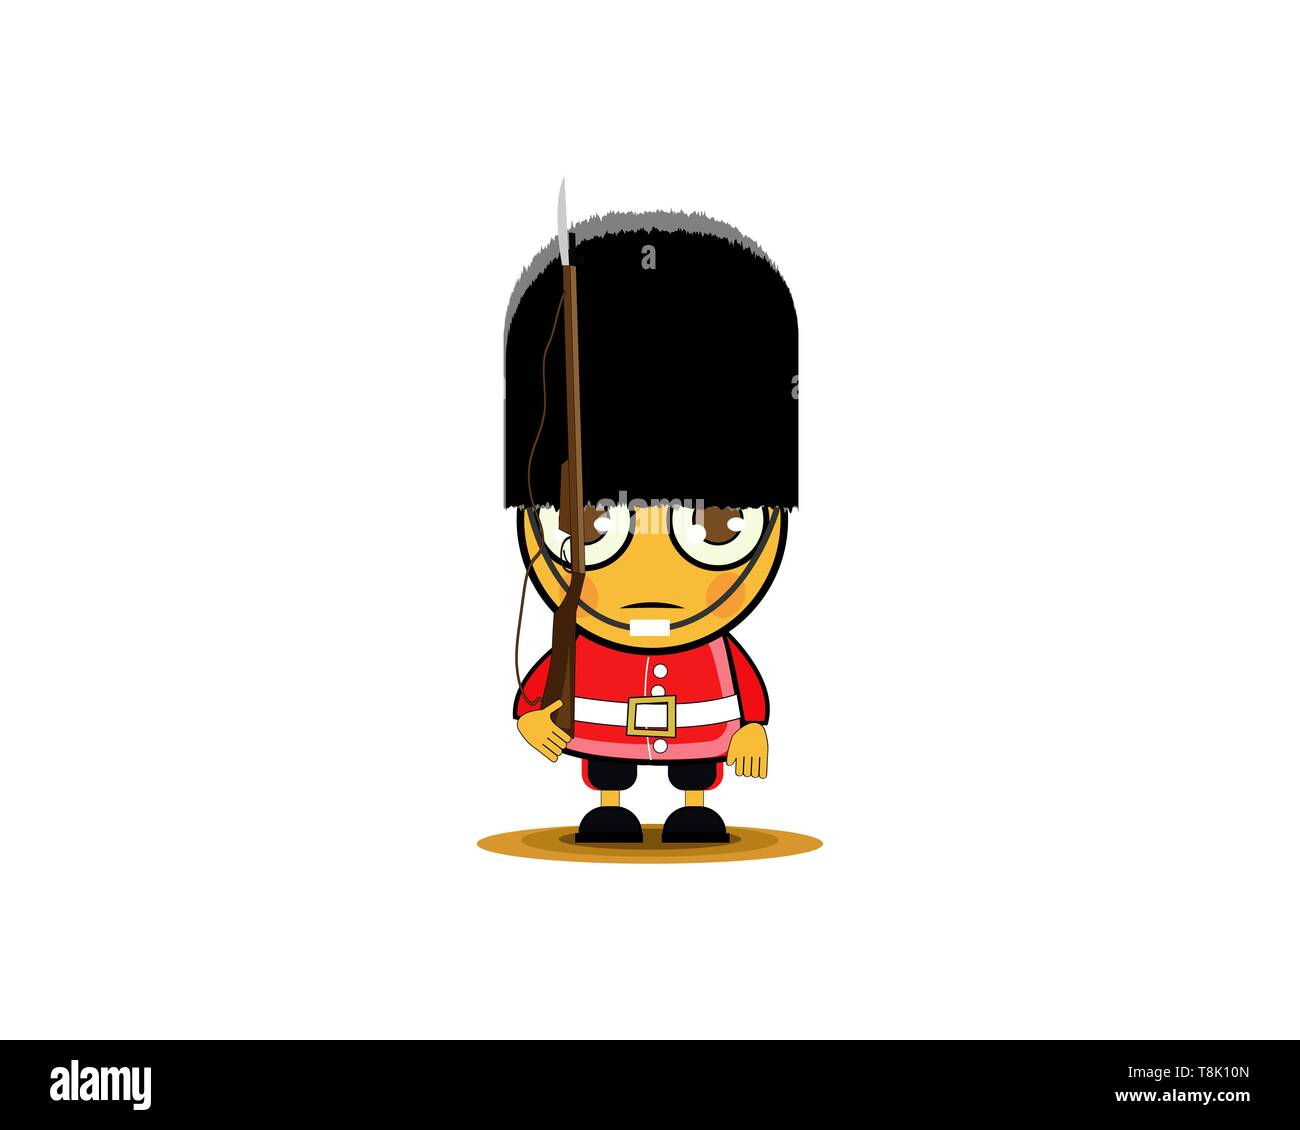 Cartoon British Royal Soldier with weapon . Vector illustration. - Stock Image